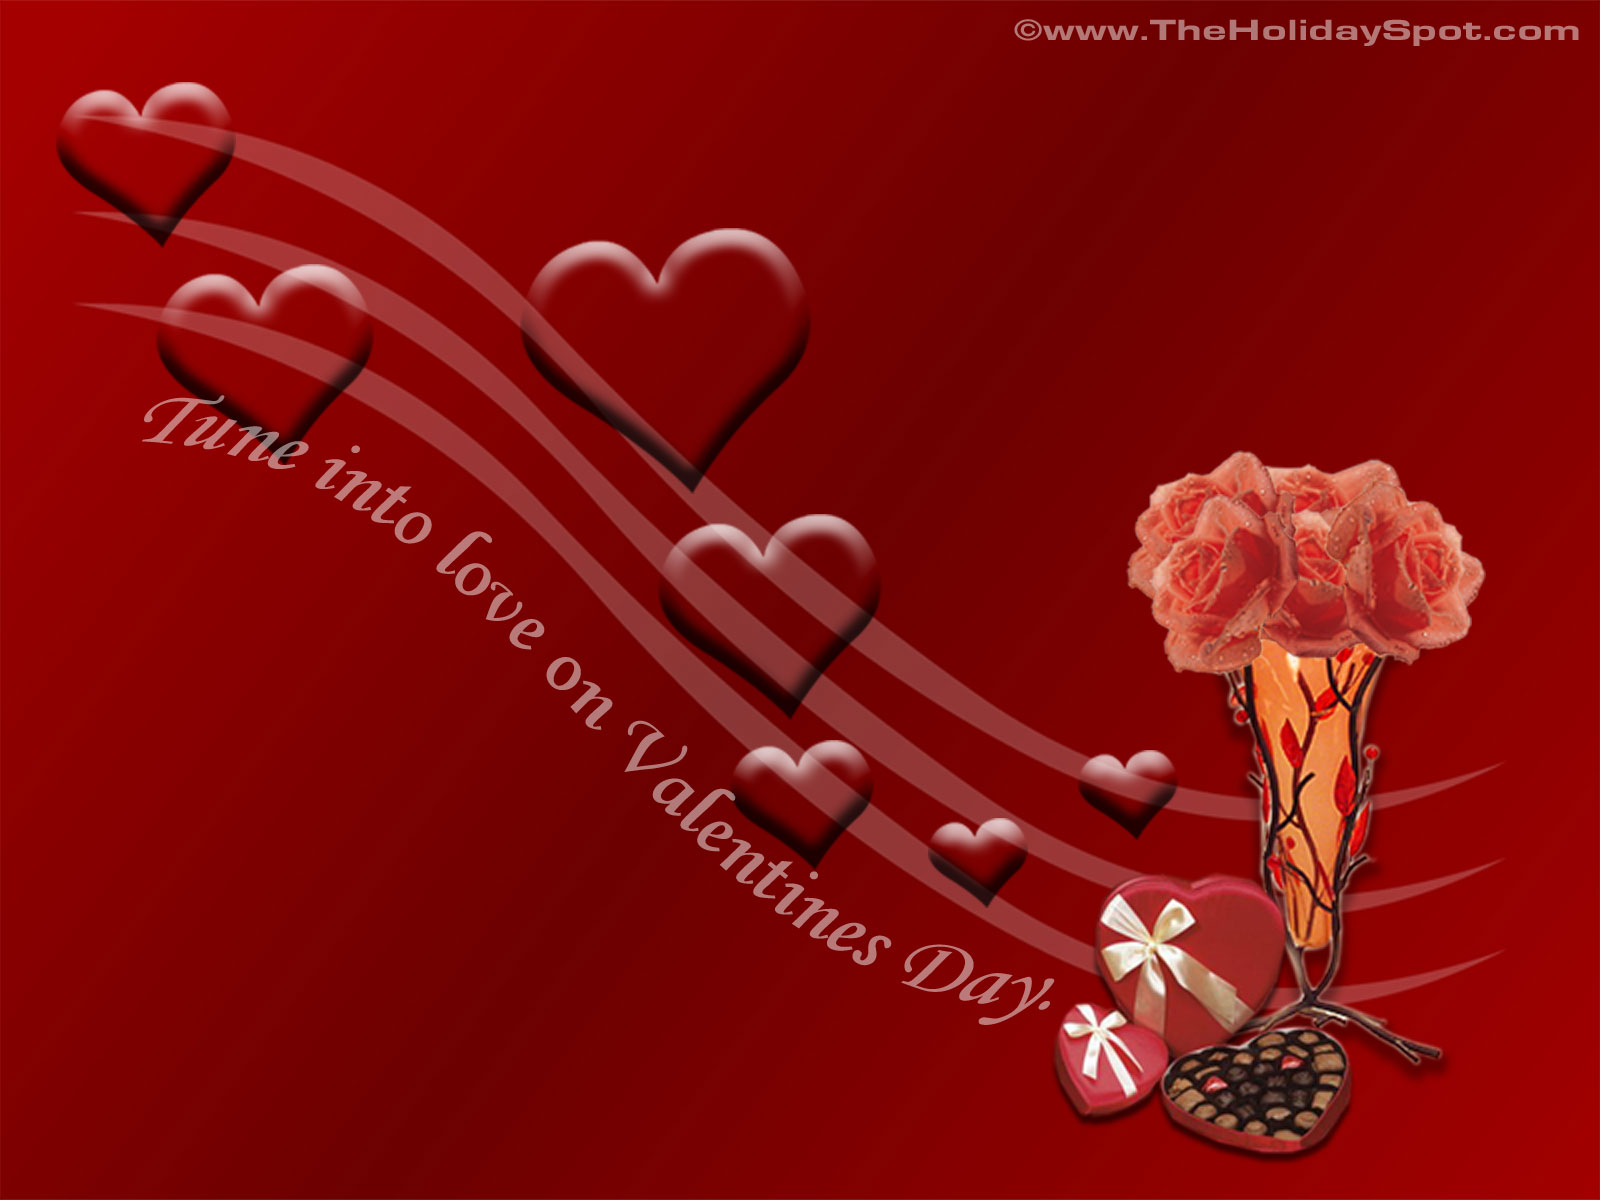 The black mamba valentines day special 3d greetings and animation valentines day special 3d greetings and animation m4hsunfo